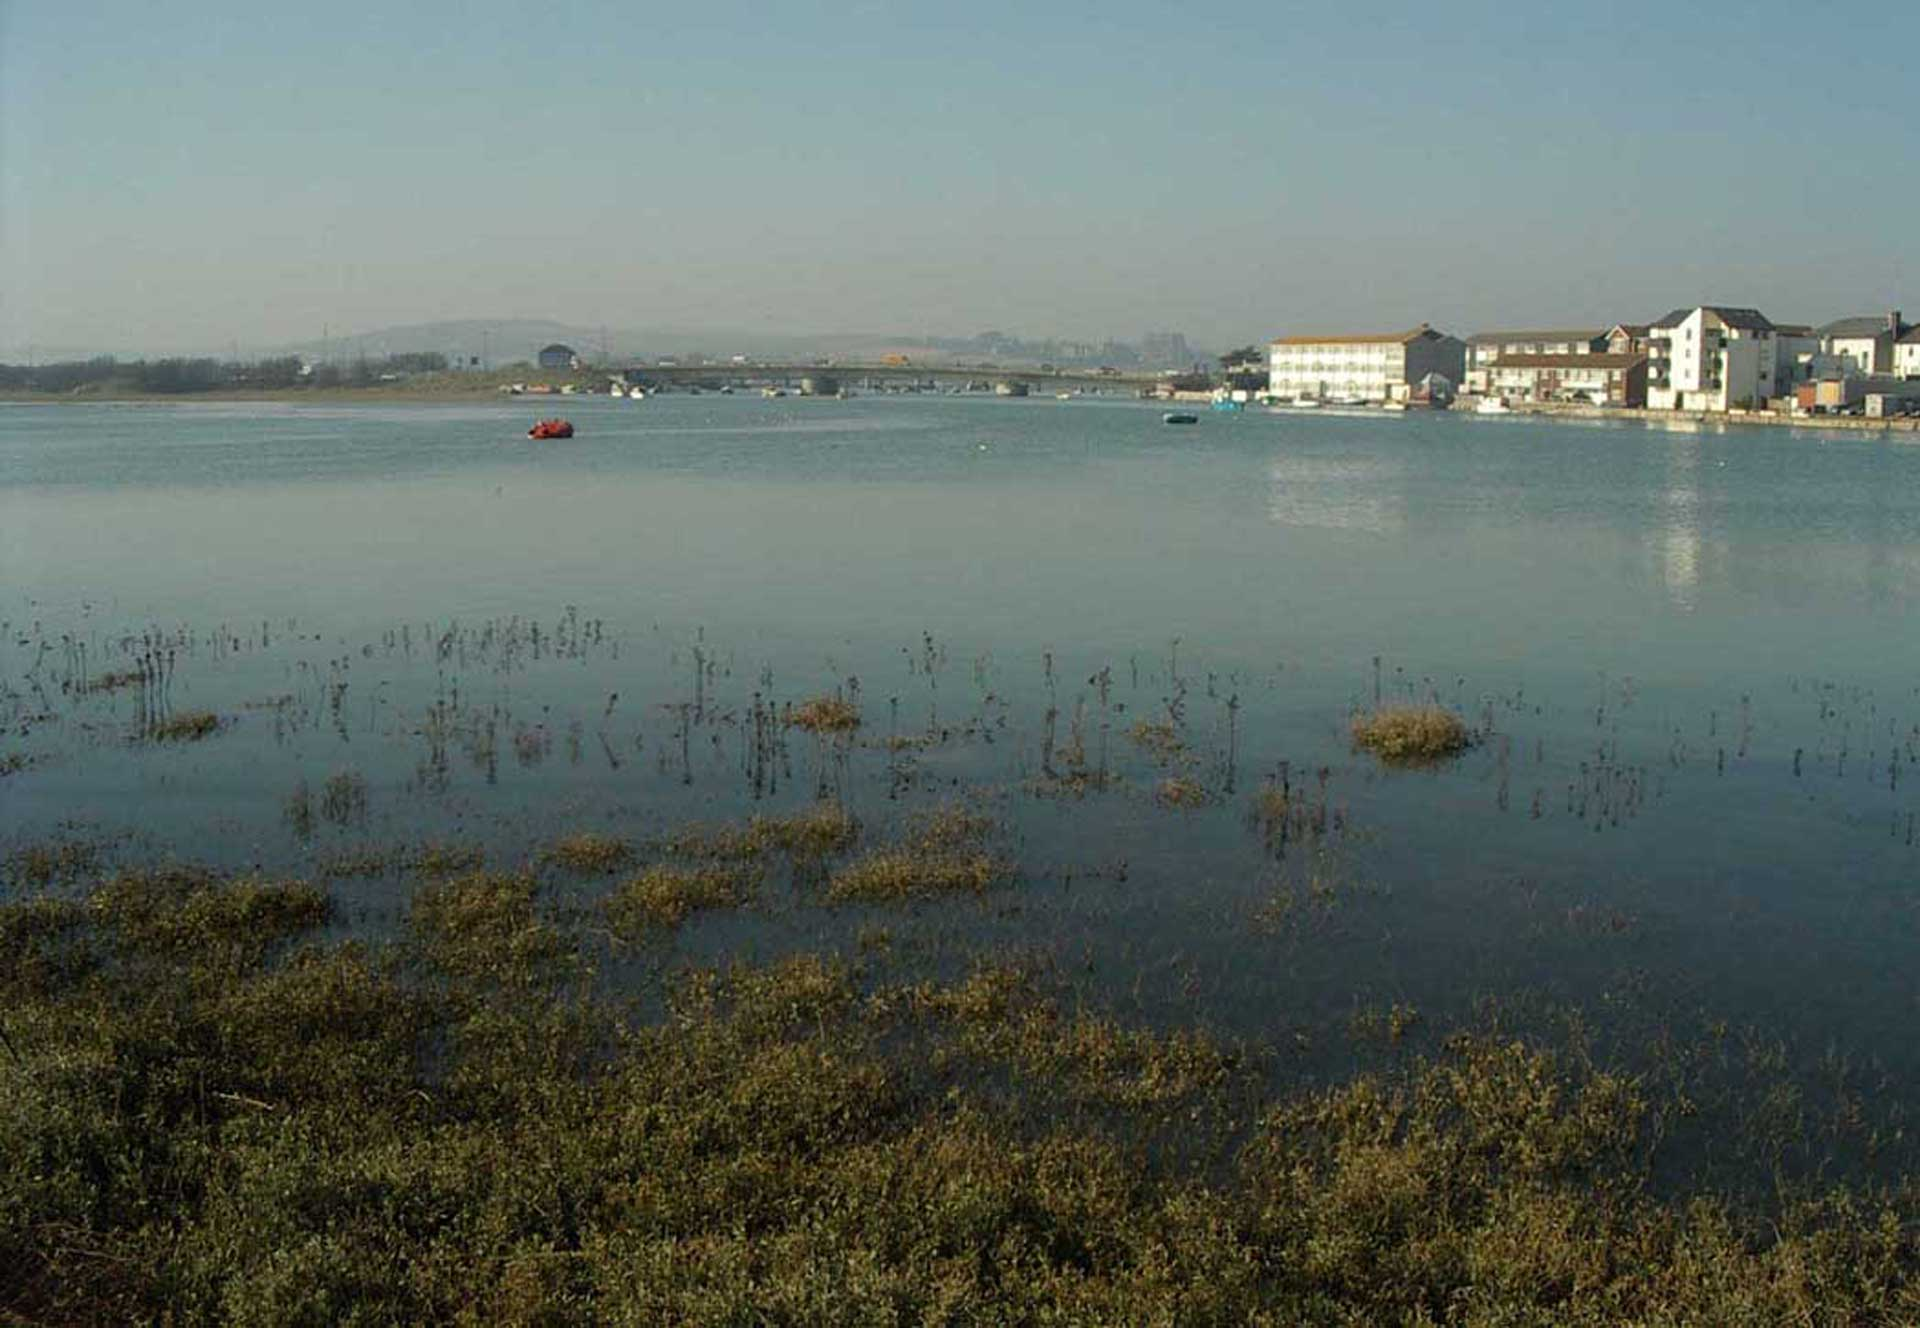 River Adur in Shoreham town centre, the view from Shoreham beach at the SW end of the footbridge (Photograph by Andy Horton)